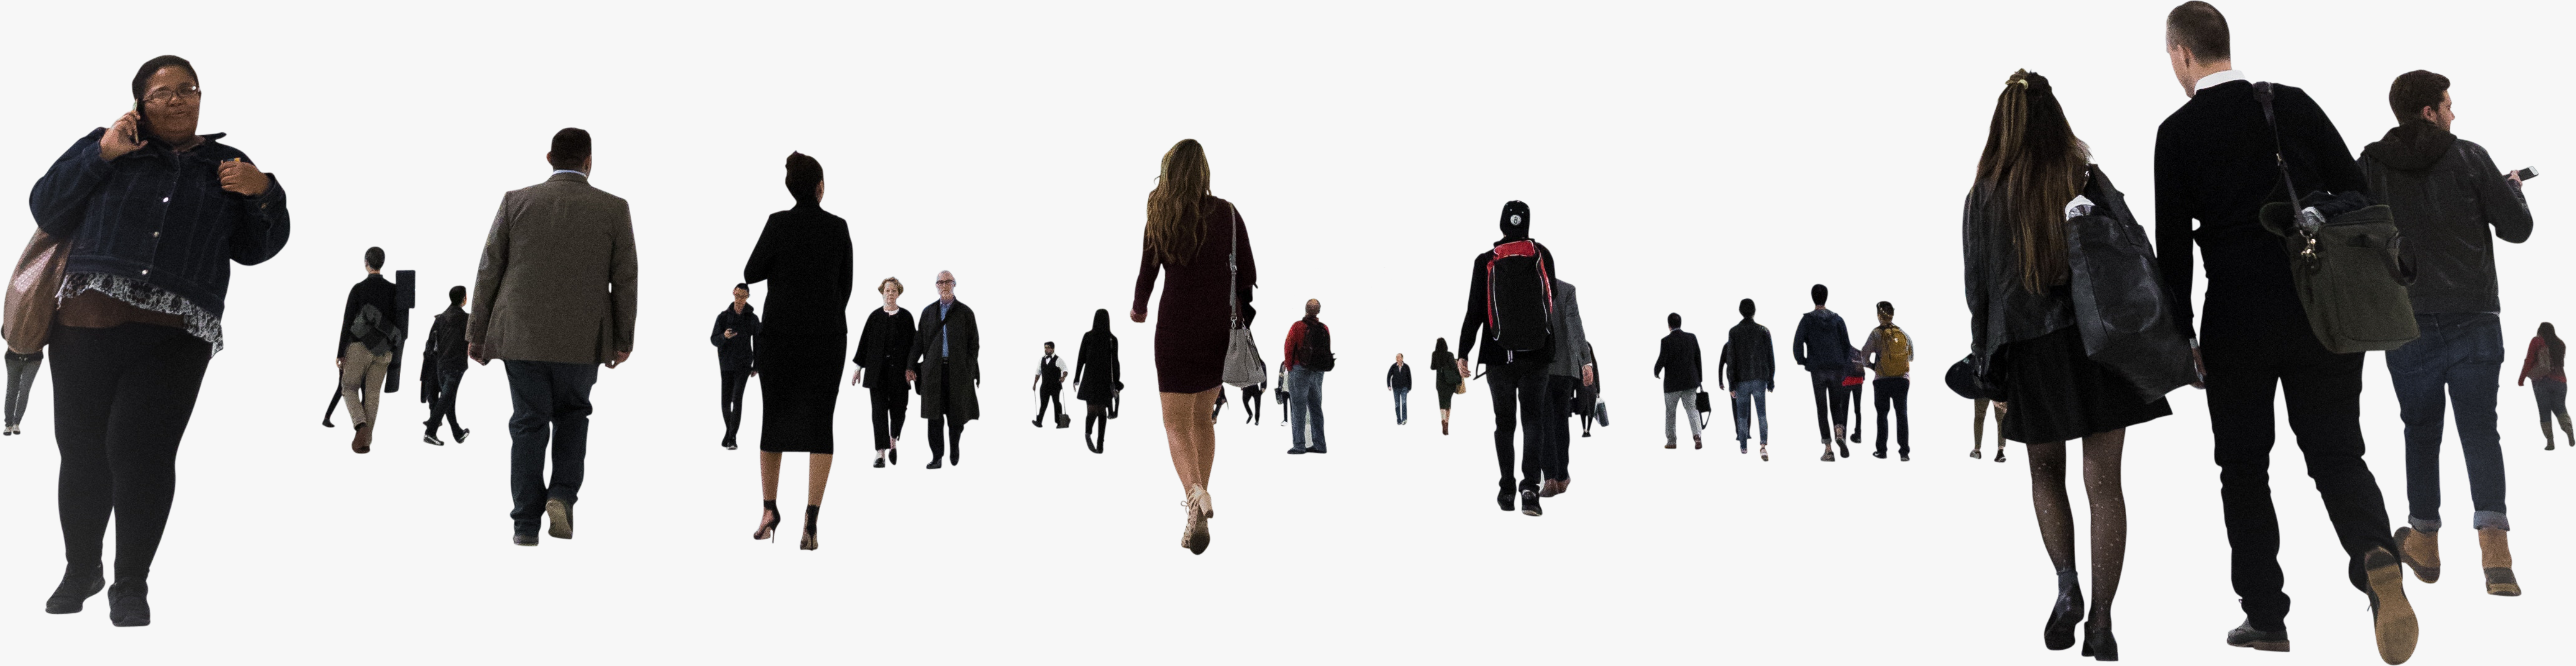 Group Of Business People Walking Png People Png People Walking Png Business People